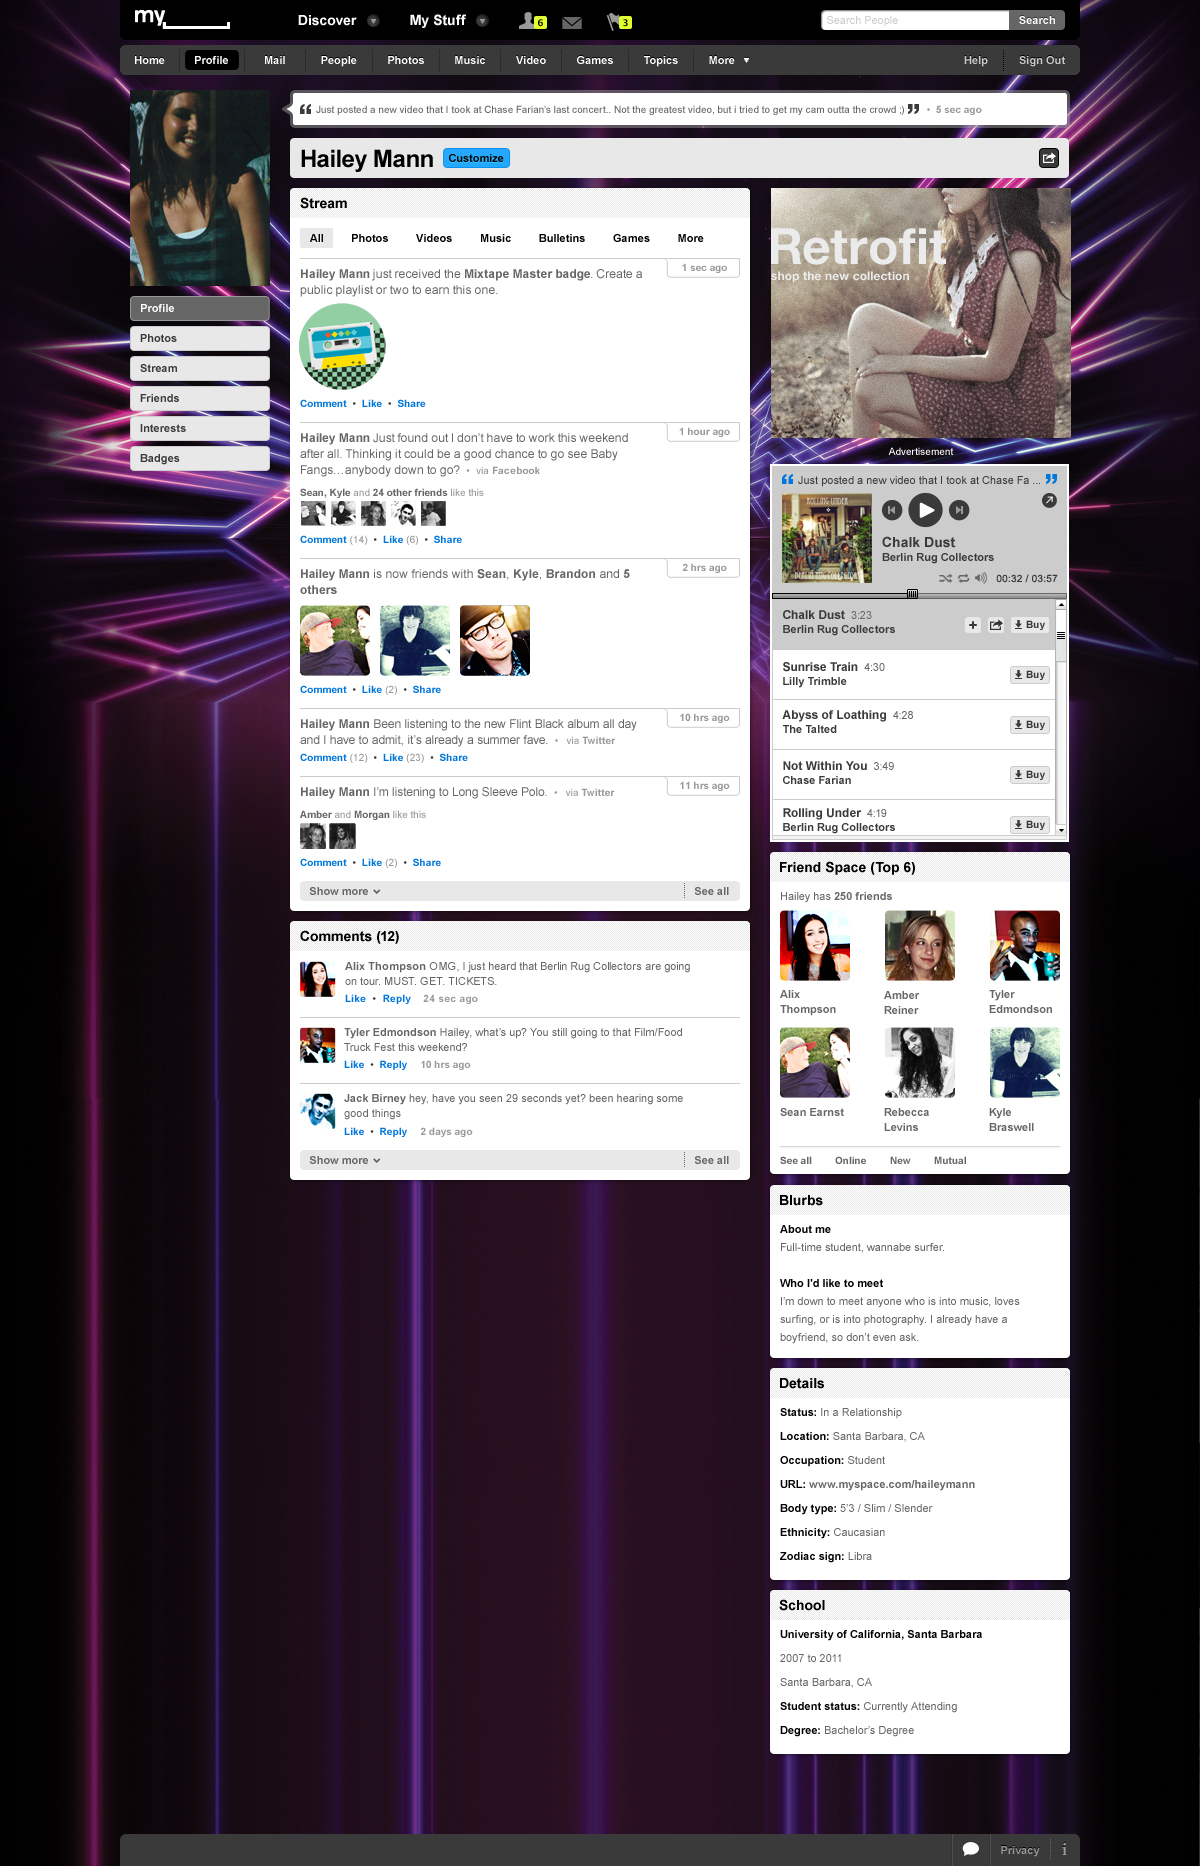 A view of the new MySpace Profile page.